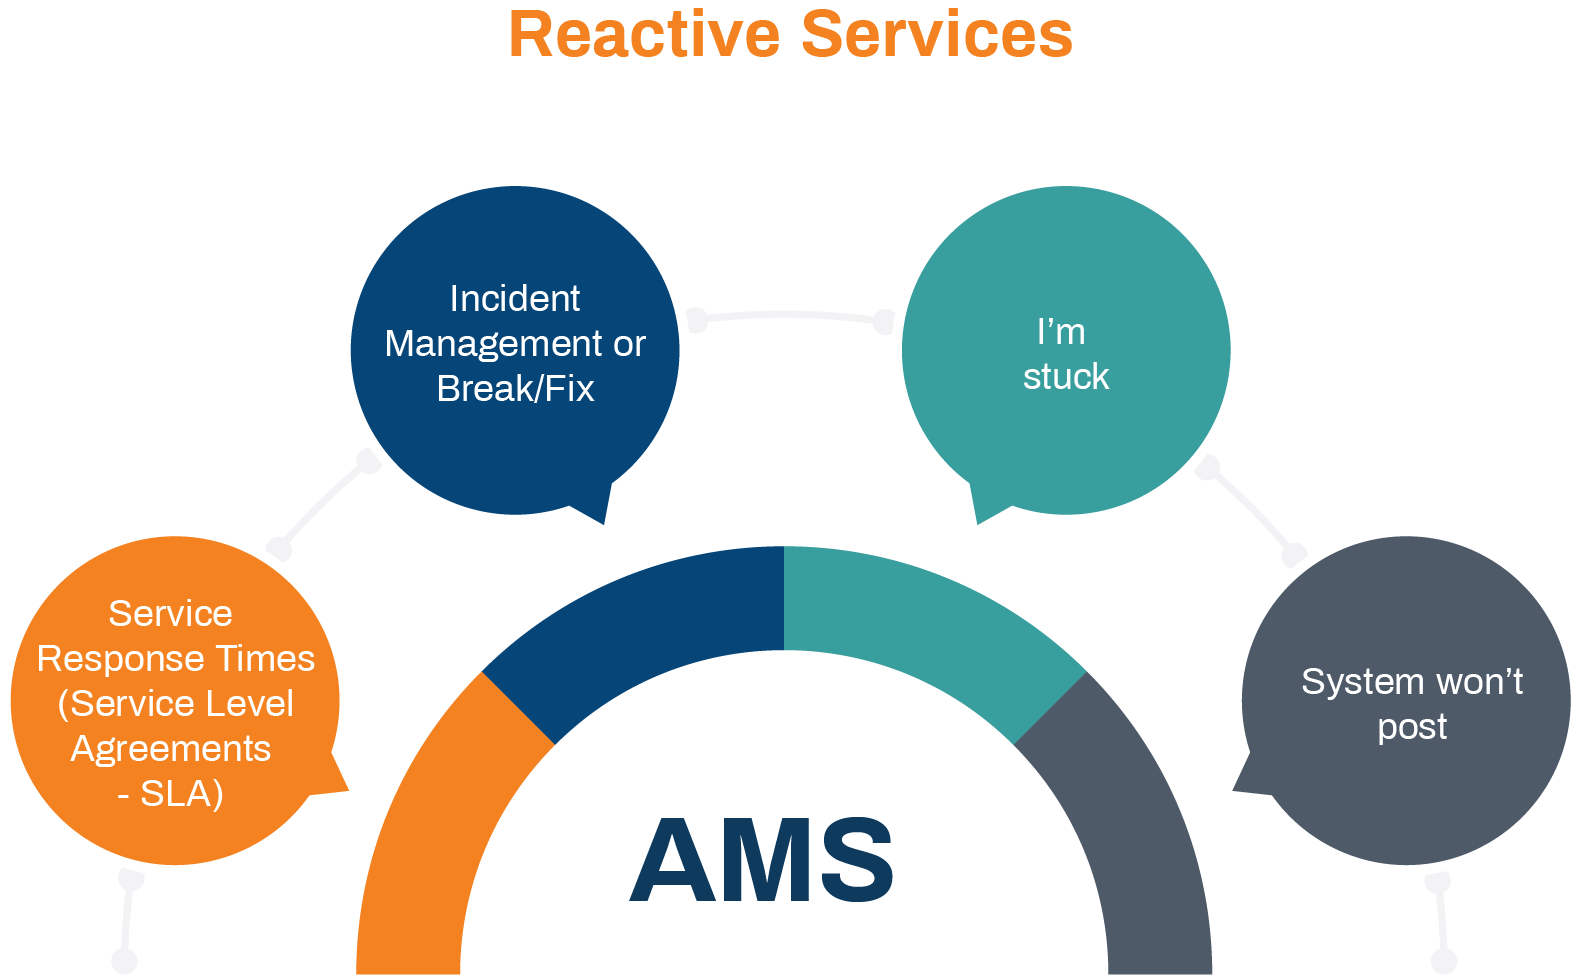 Reactive services of application management services